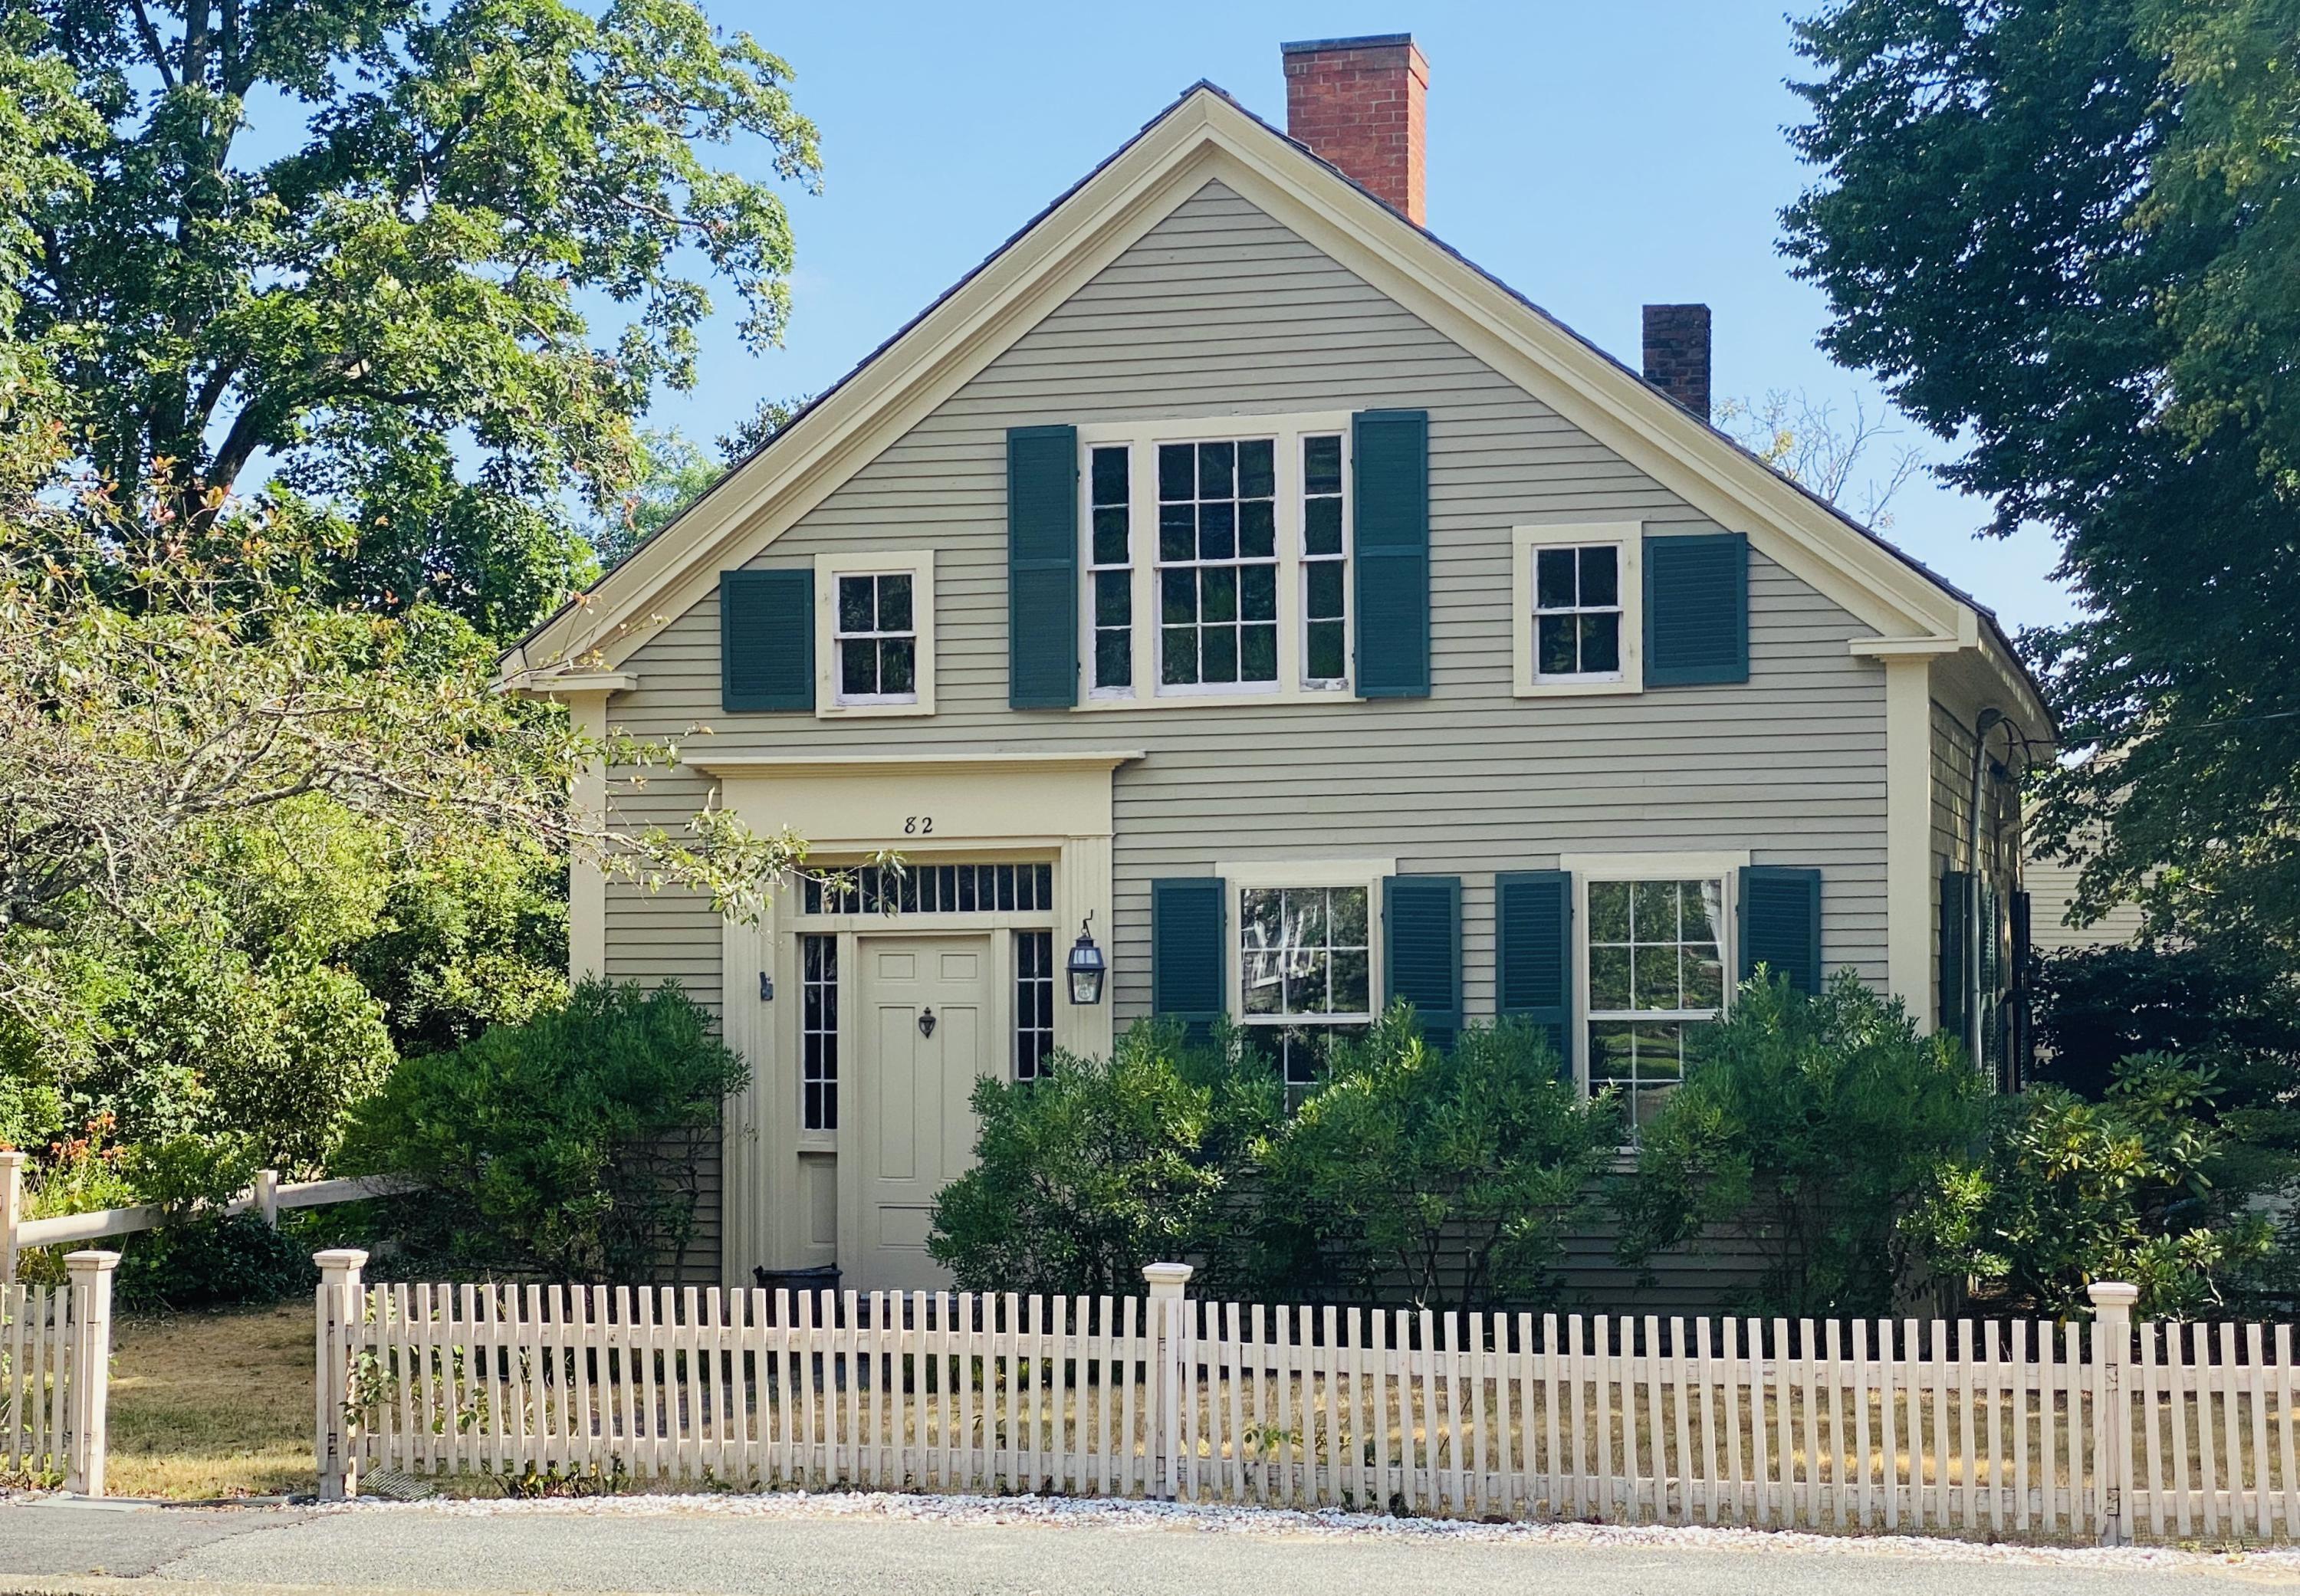 82-84 Main Street, Orleans MA, 02653 details